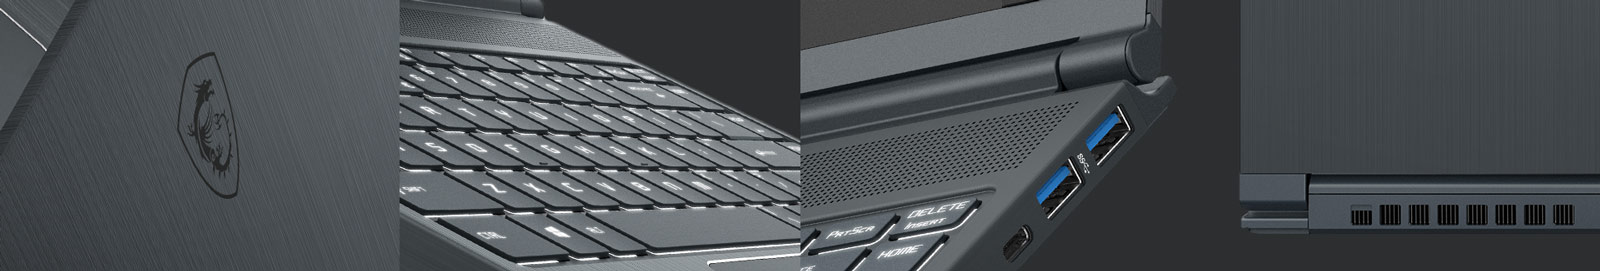 Four Angles of View about Modern 14's Details: Back Cover, Keyboard, USB Ports and Exhaust Vents